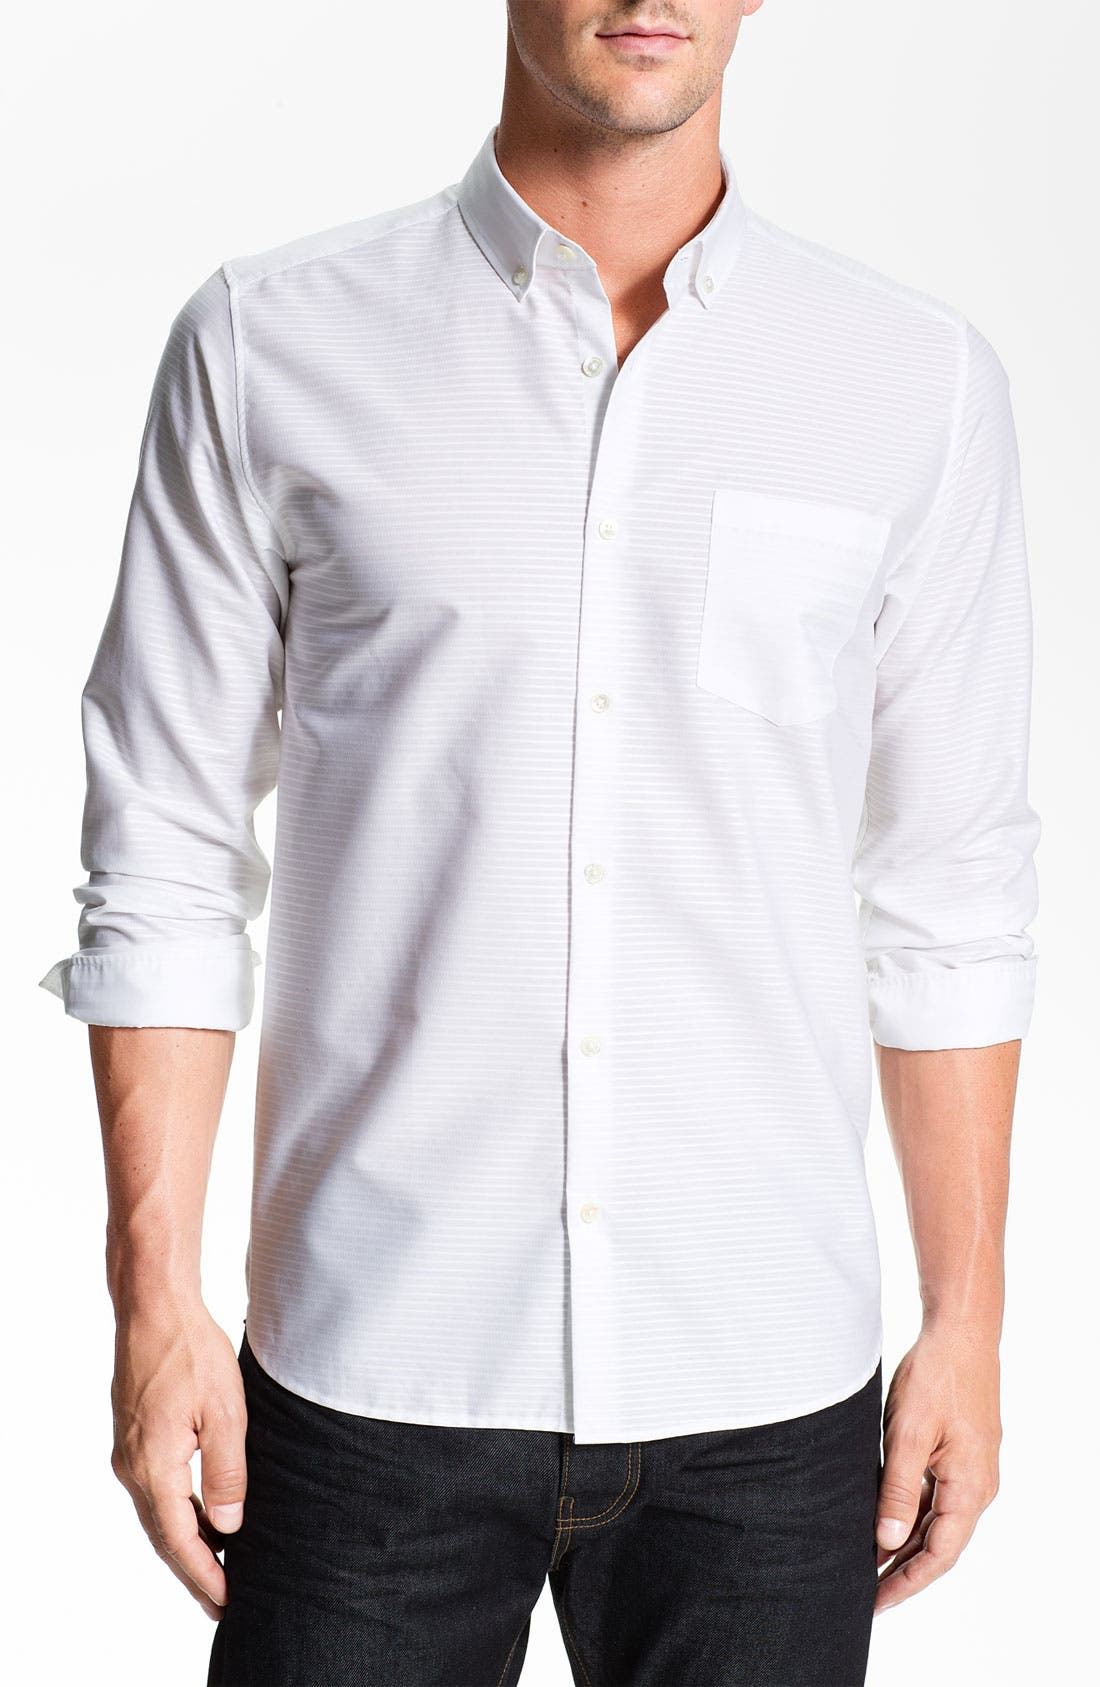 Main Image - Ted Baker London 'Whipit' Woven Sport Shirt